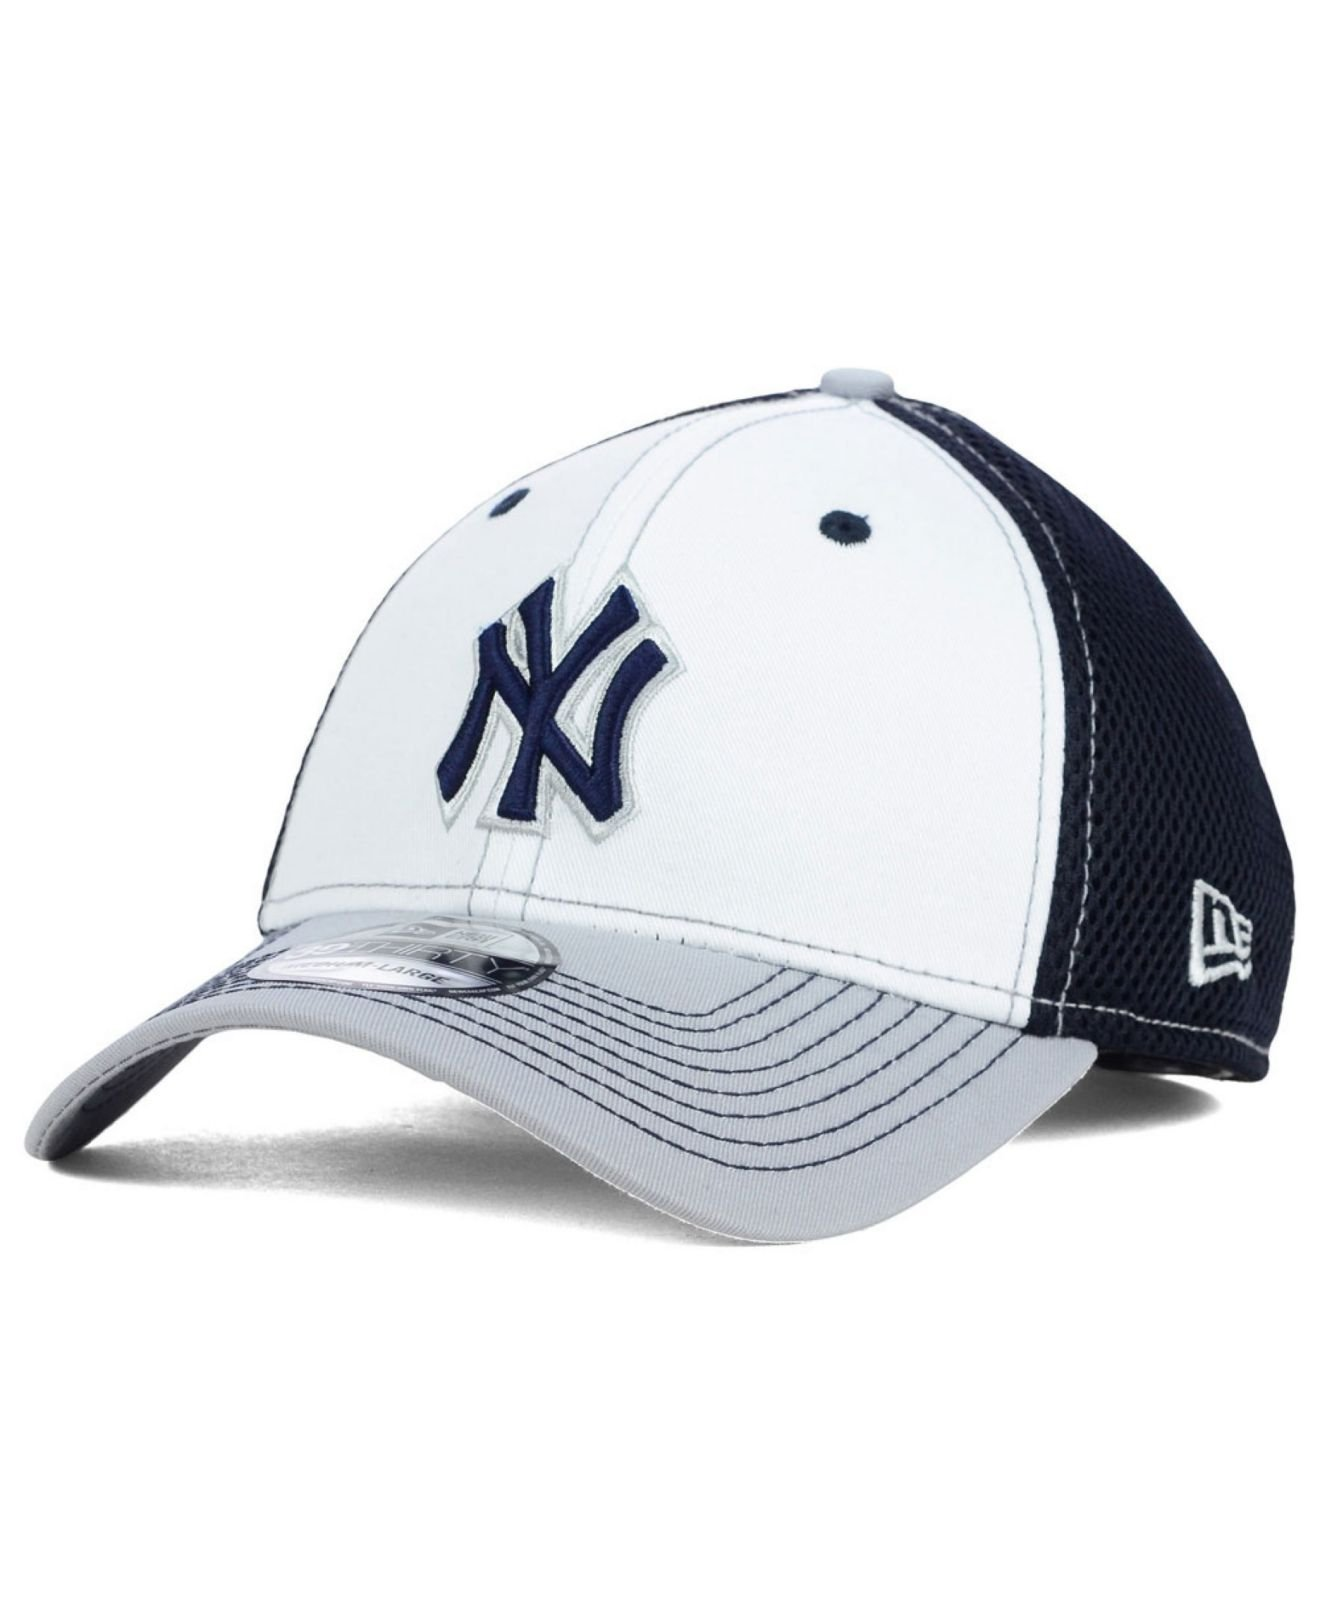 huge discount 7fa0a d8ea6 new style lyst ktz new york yankees neo 39thirty cap in blue for men eddac  b15d3